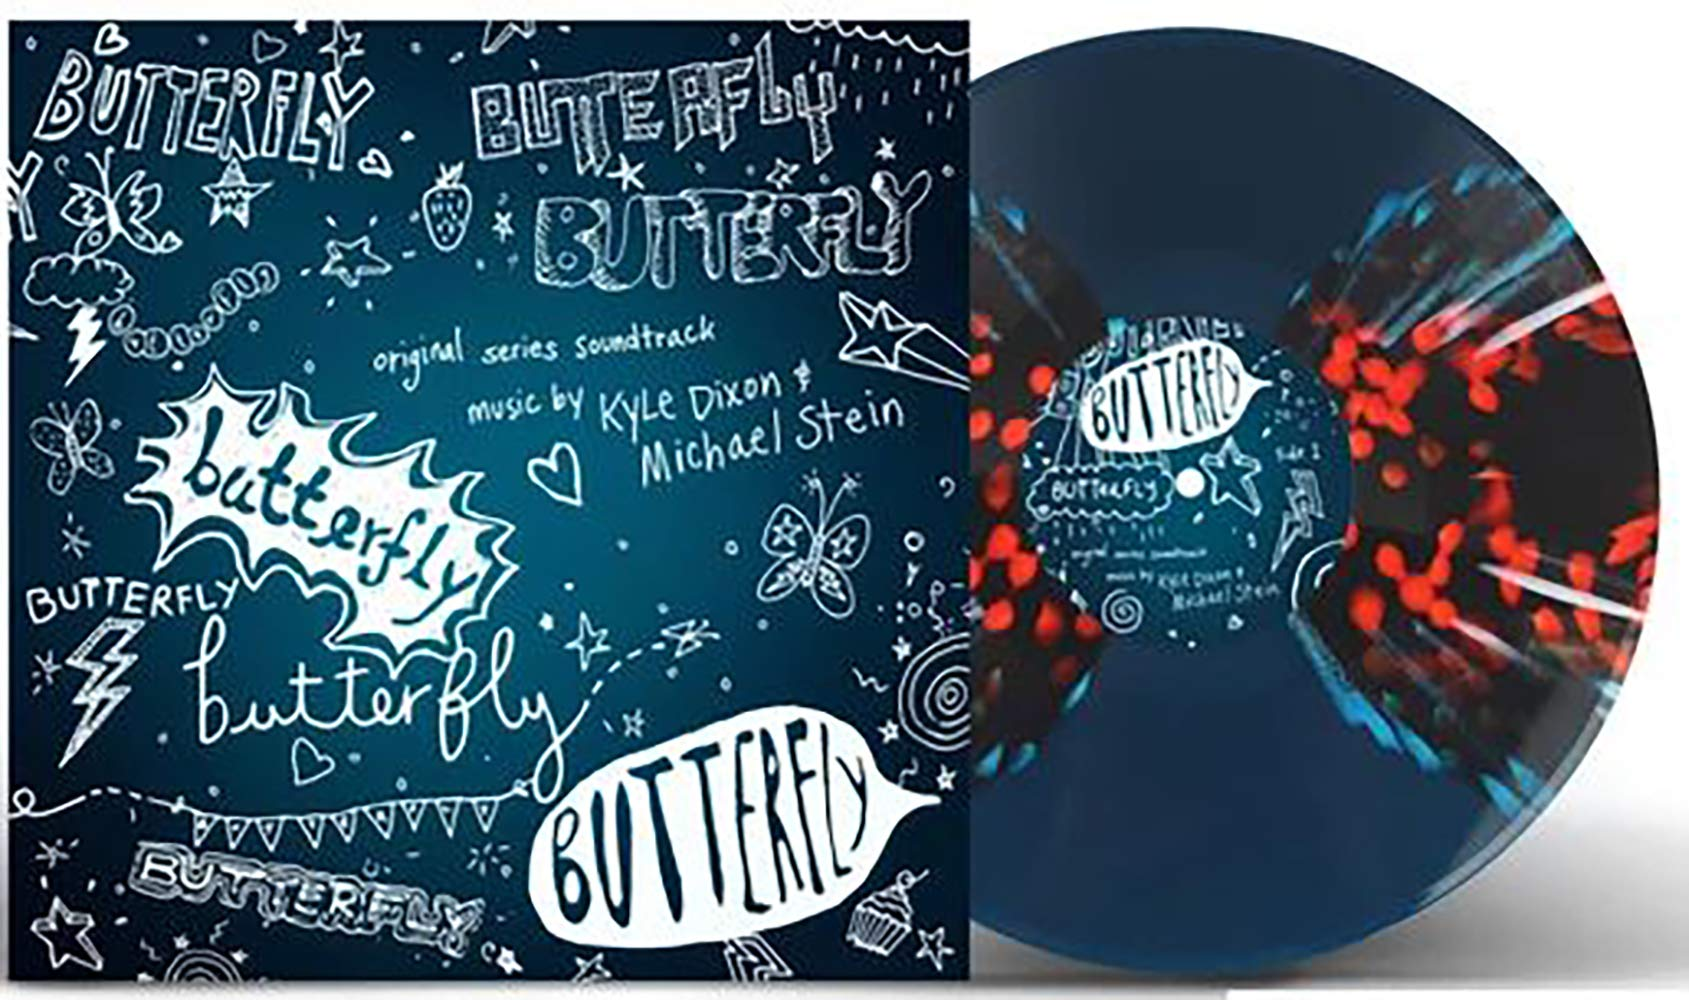 Butterfly (Original Series Soundtrack) - Exclusive Limited Edition ''Butterfly Effect'' Colored Vinyl LP by Invada Records.